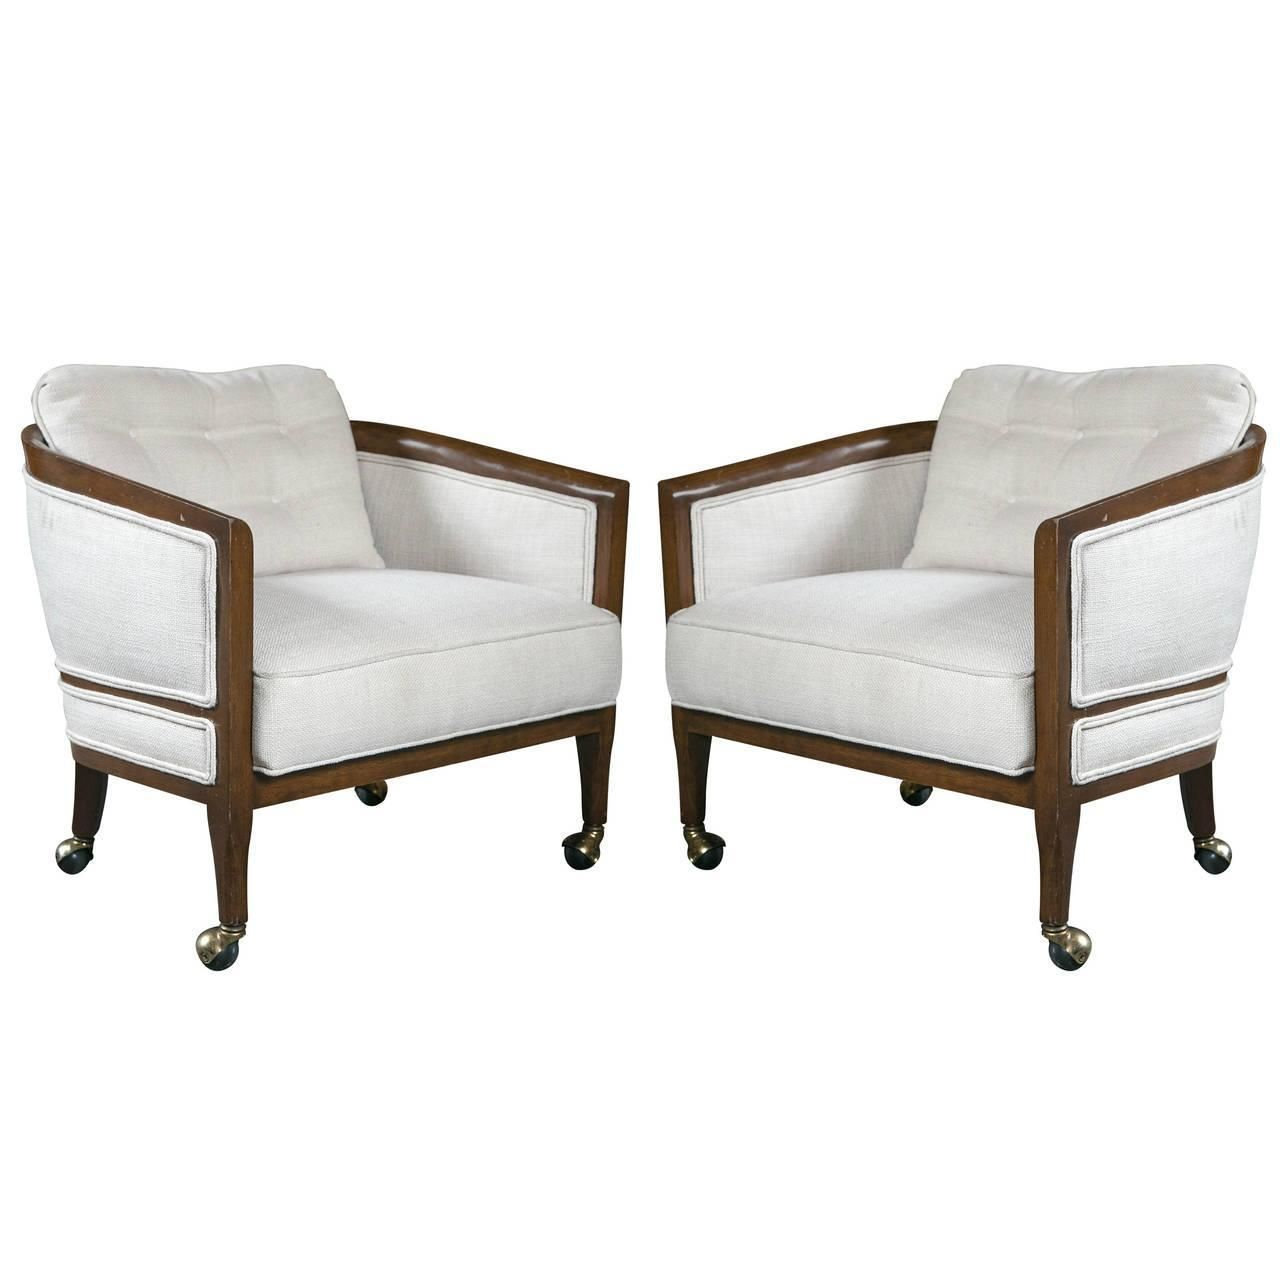 Superieur Mid Century Club Chairs On Casters   A Pair